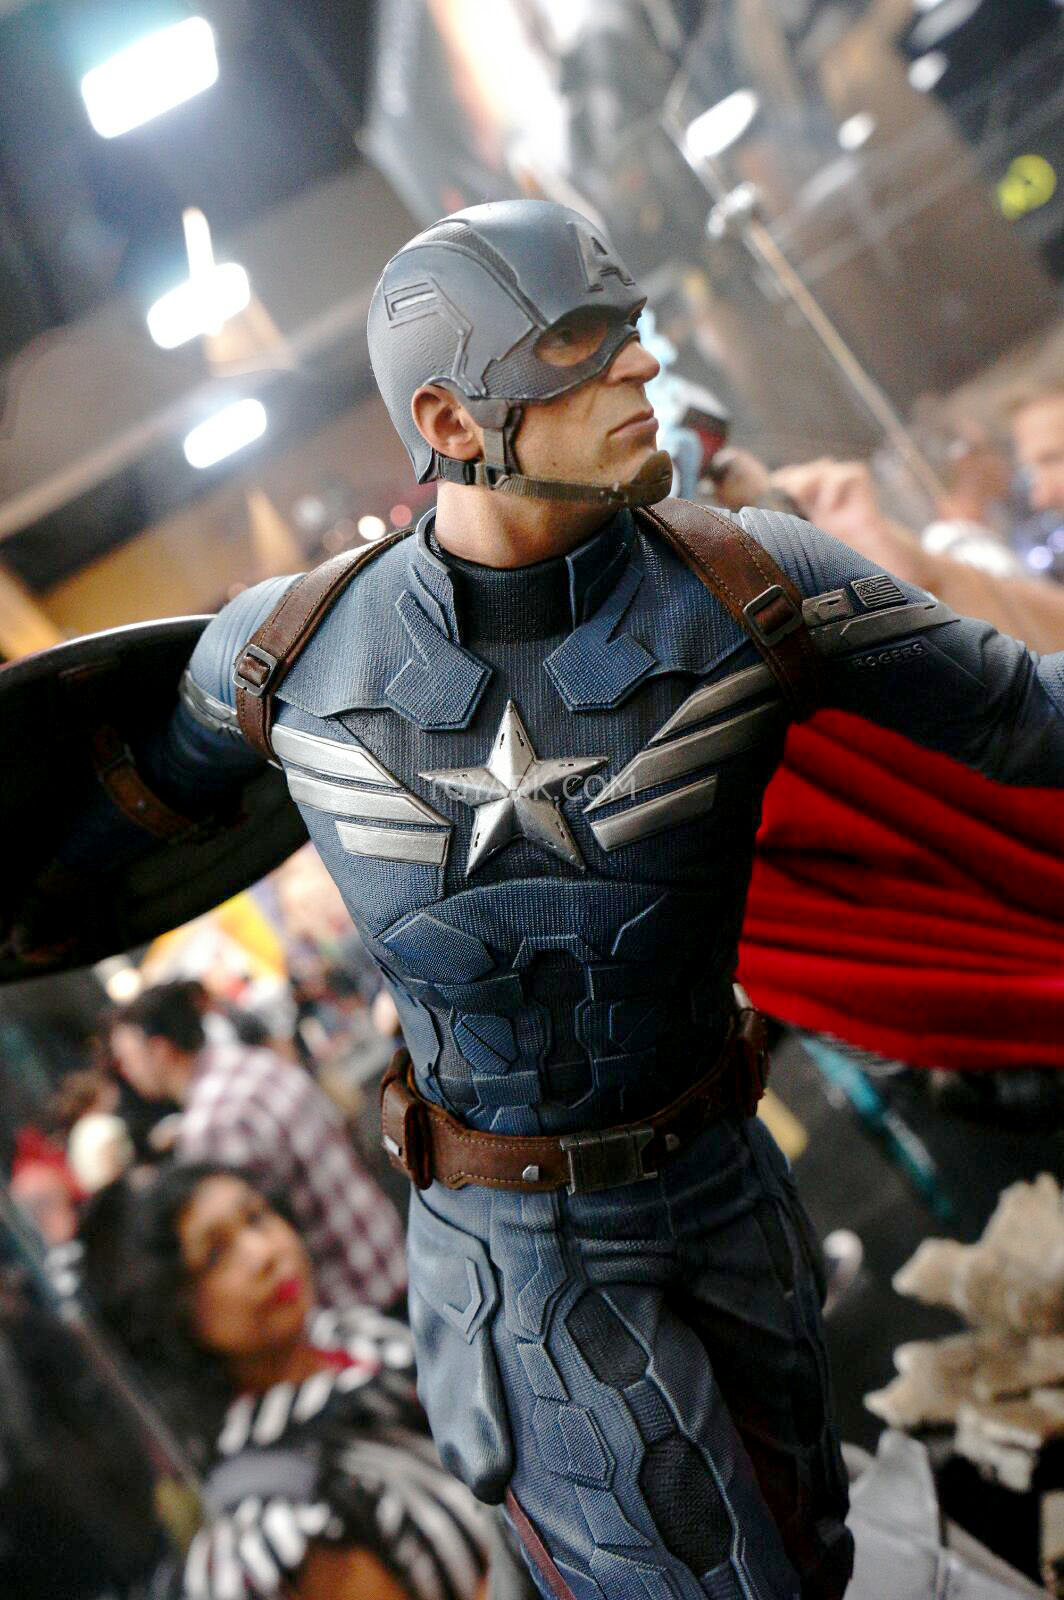 [Sideshow] Premium Format | Captain America: The Winter Soldier - Página 4 SDCC-2014Sideshow-Friday-102